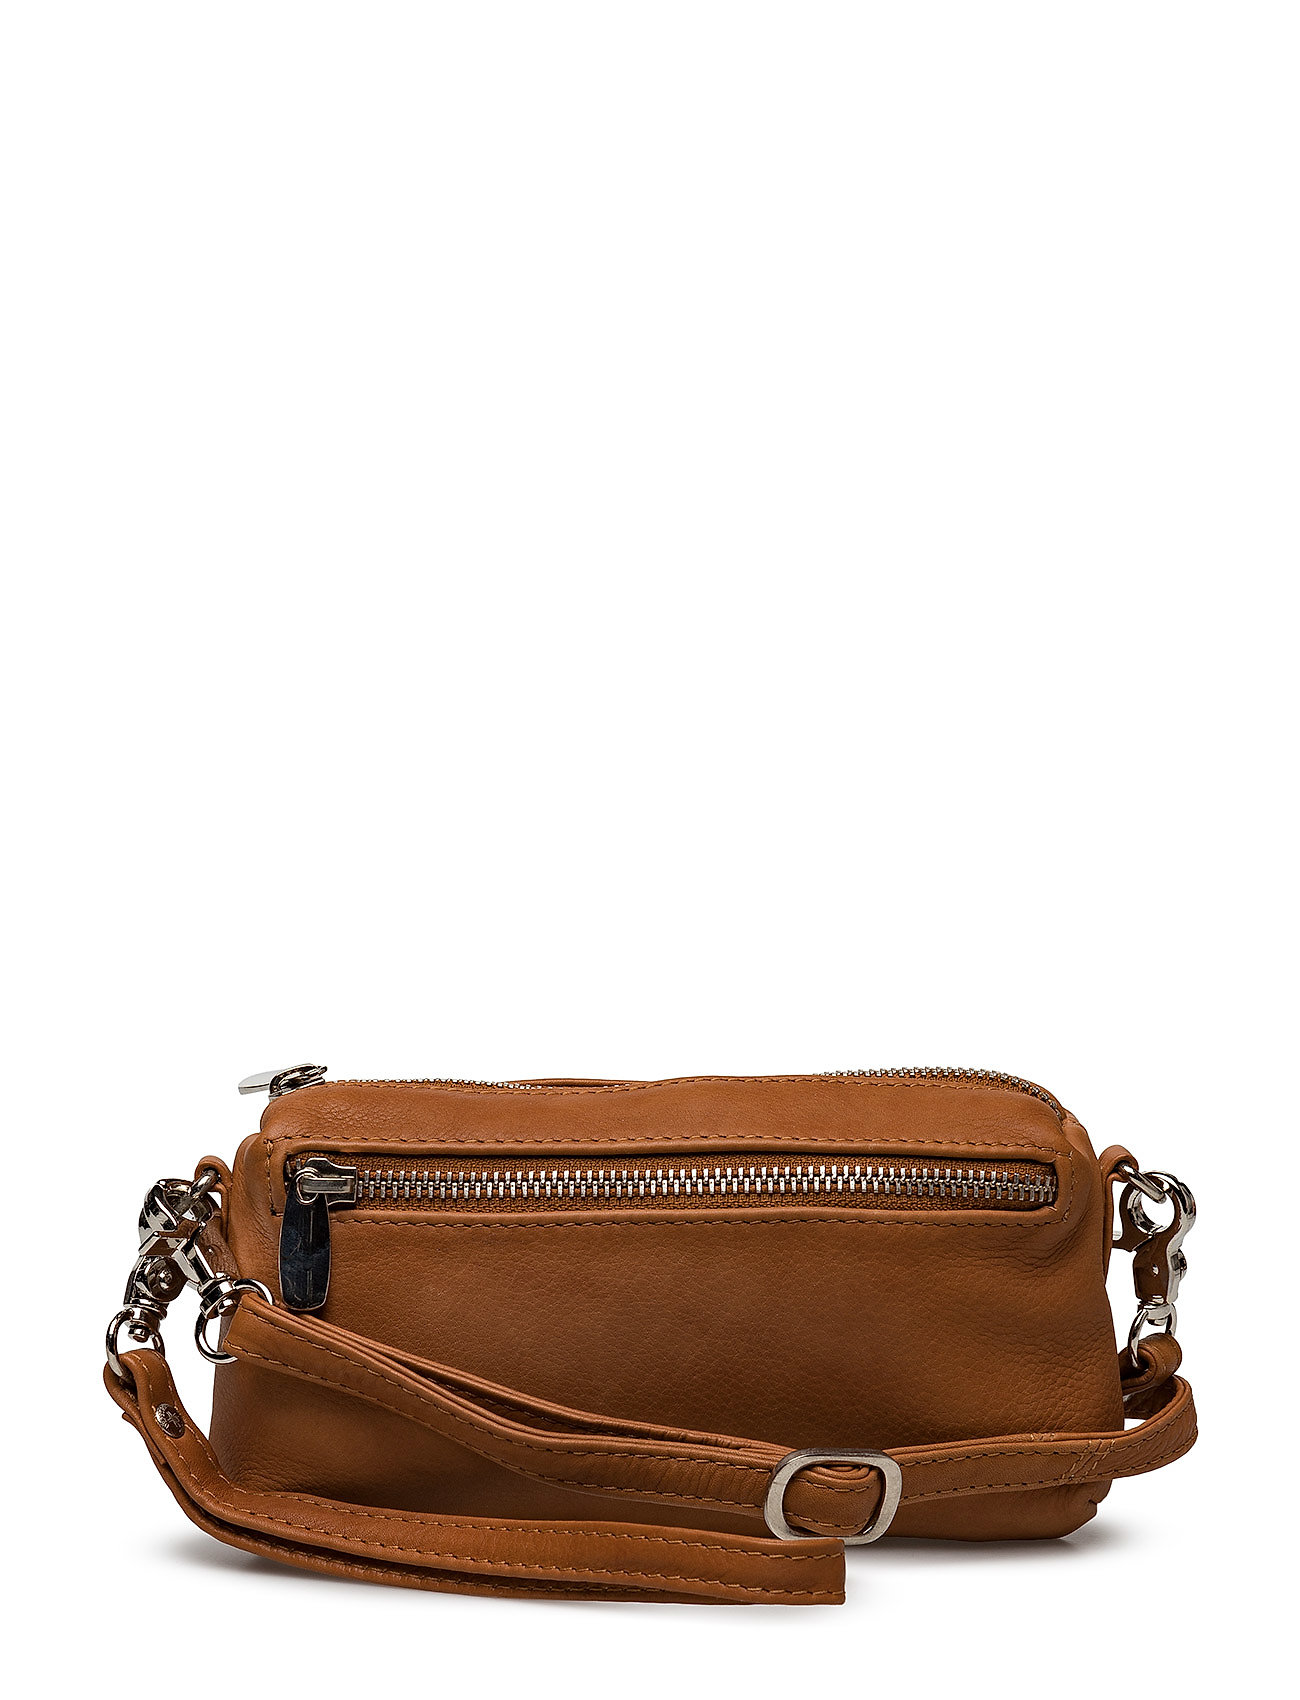 Image of Small Bag / Clutch Bags Small Shoulder Bags/crossbody Bags Brun DEPECHE (2953091631)